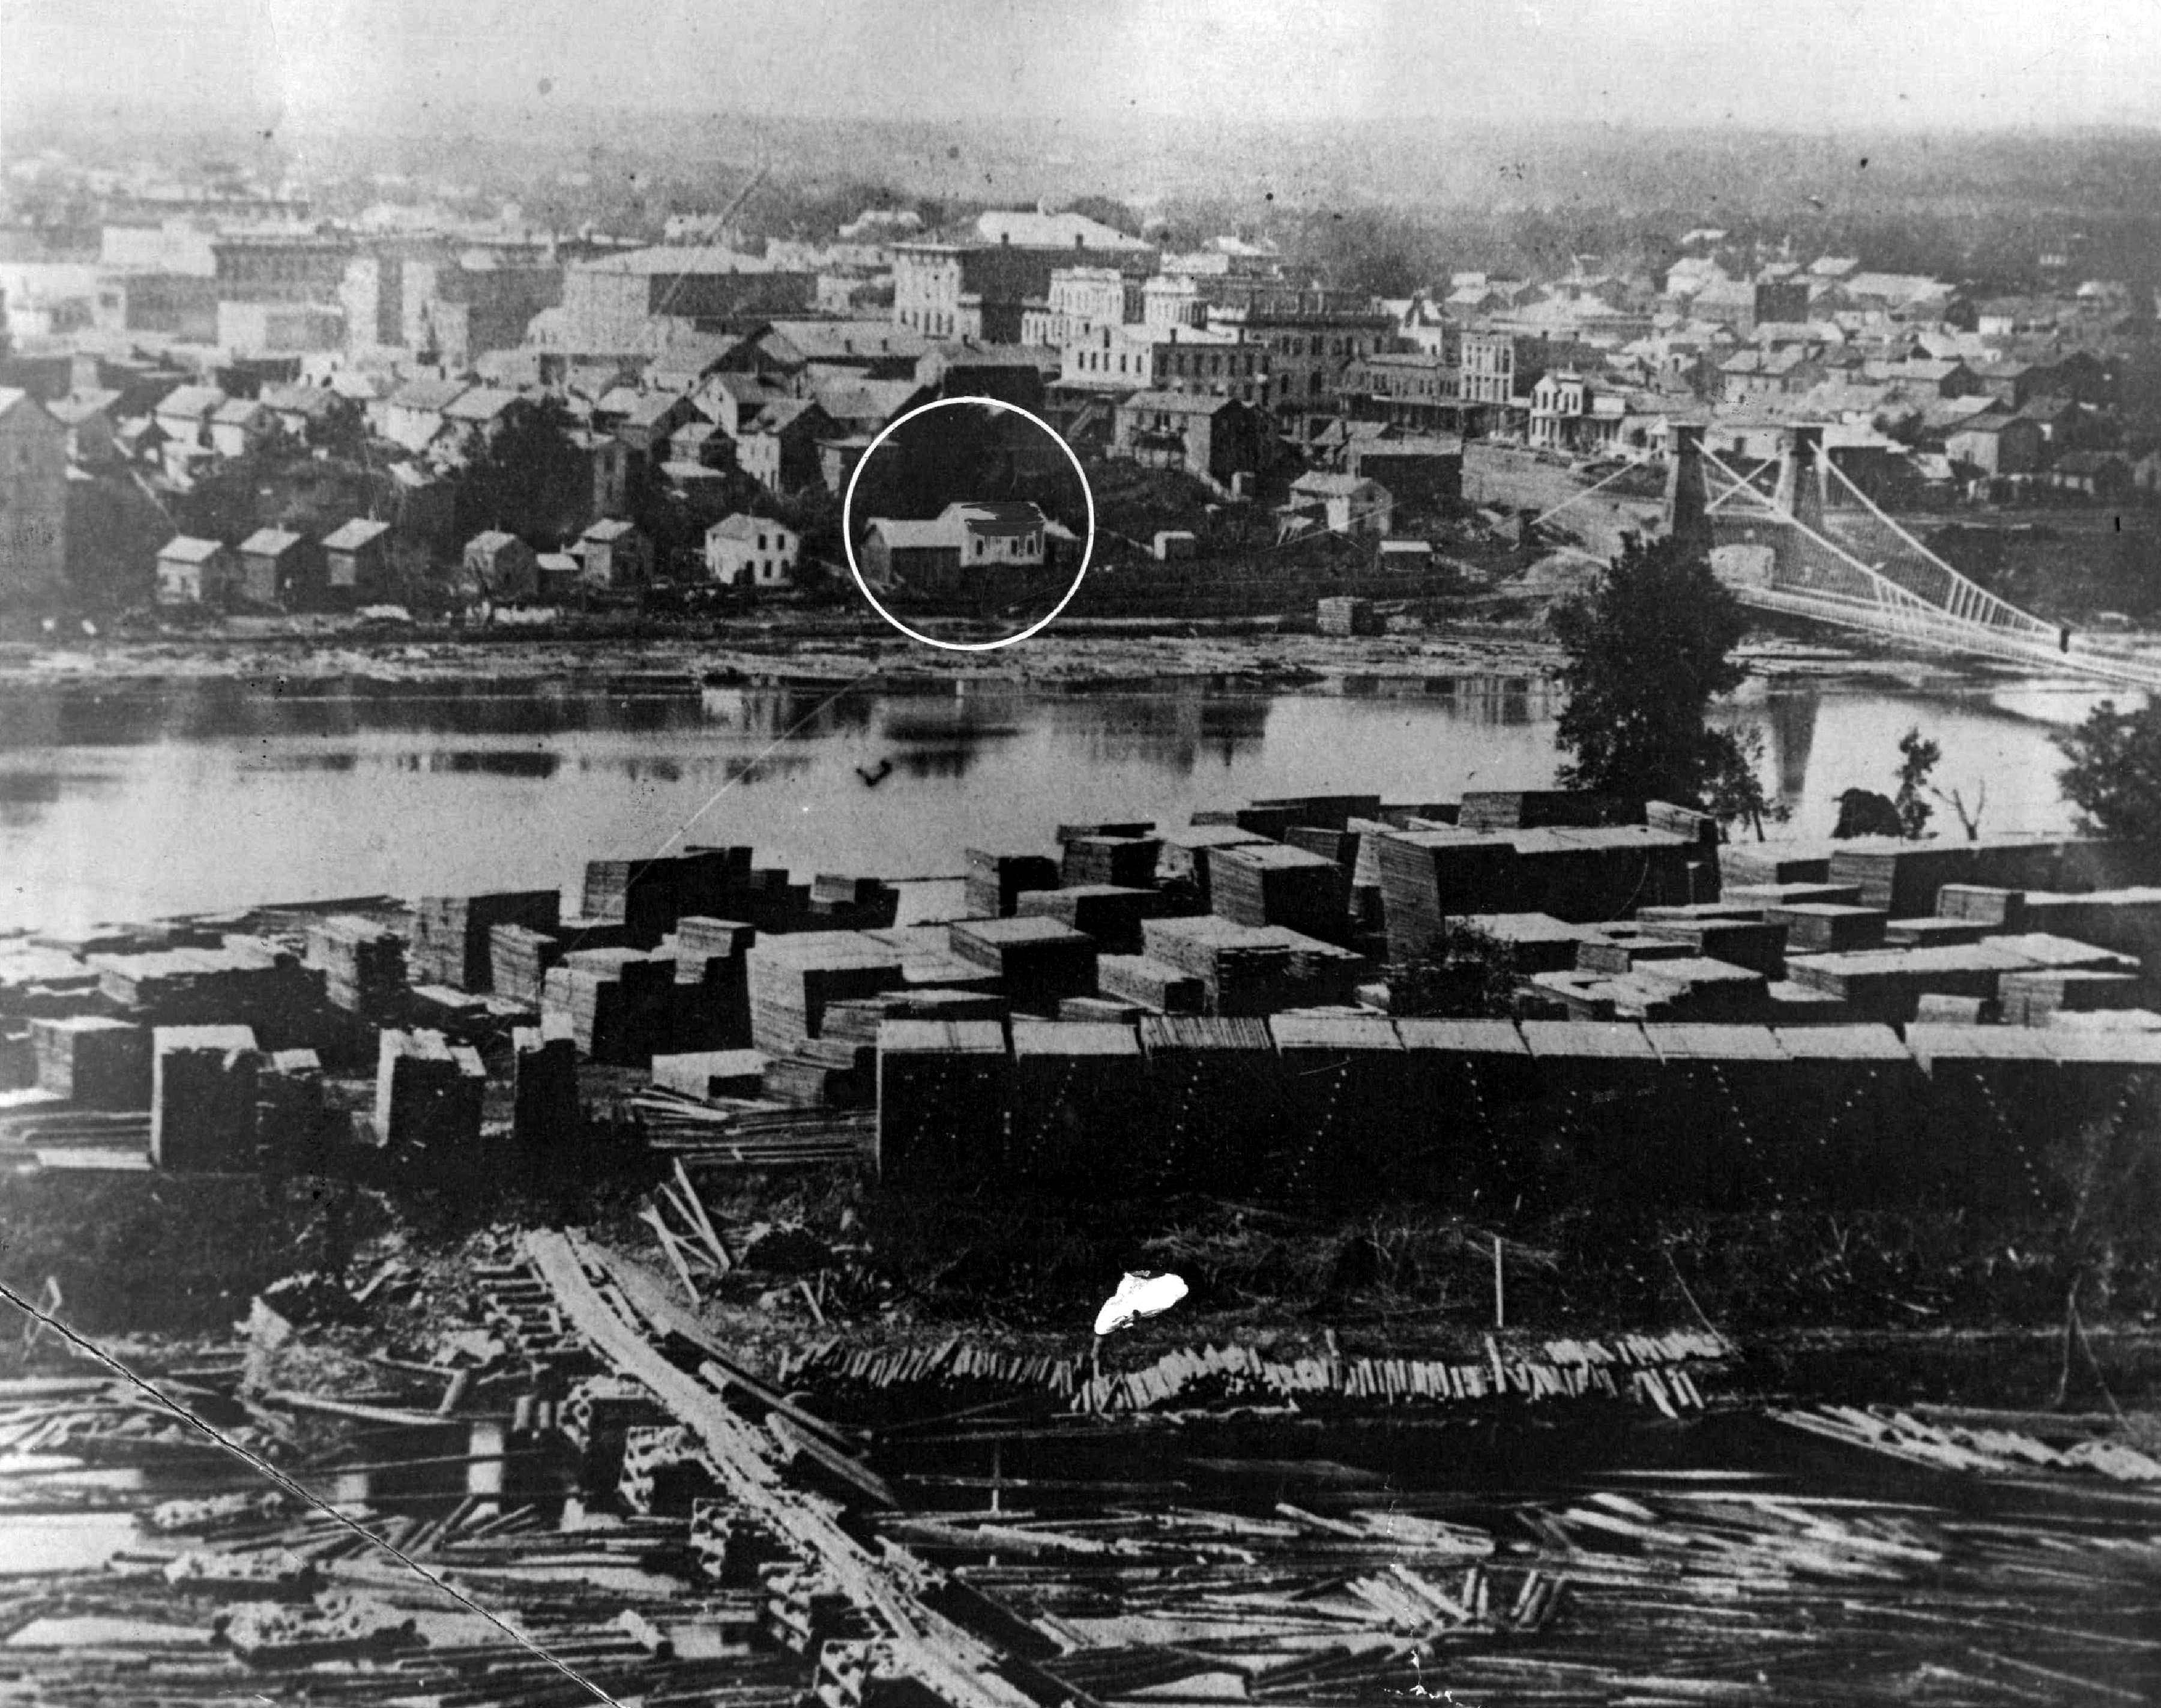 This 19th Century photo of downtown Minneapolis shows the Stevens House in its original location alongside the Mississippi River.